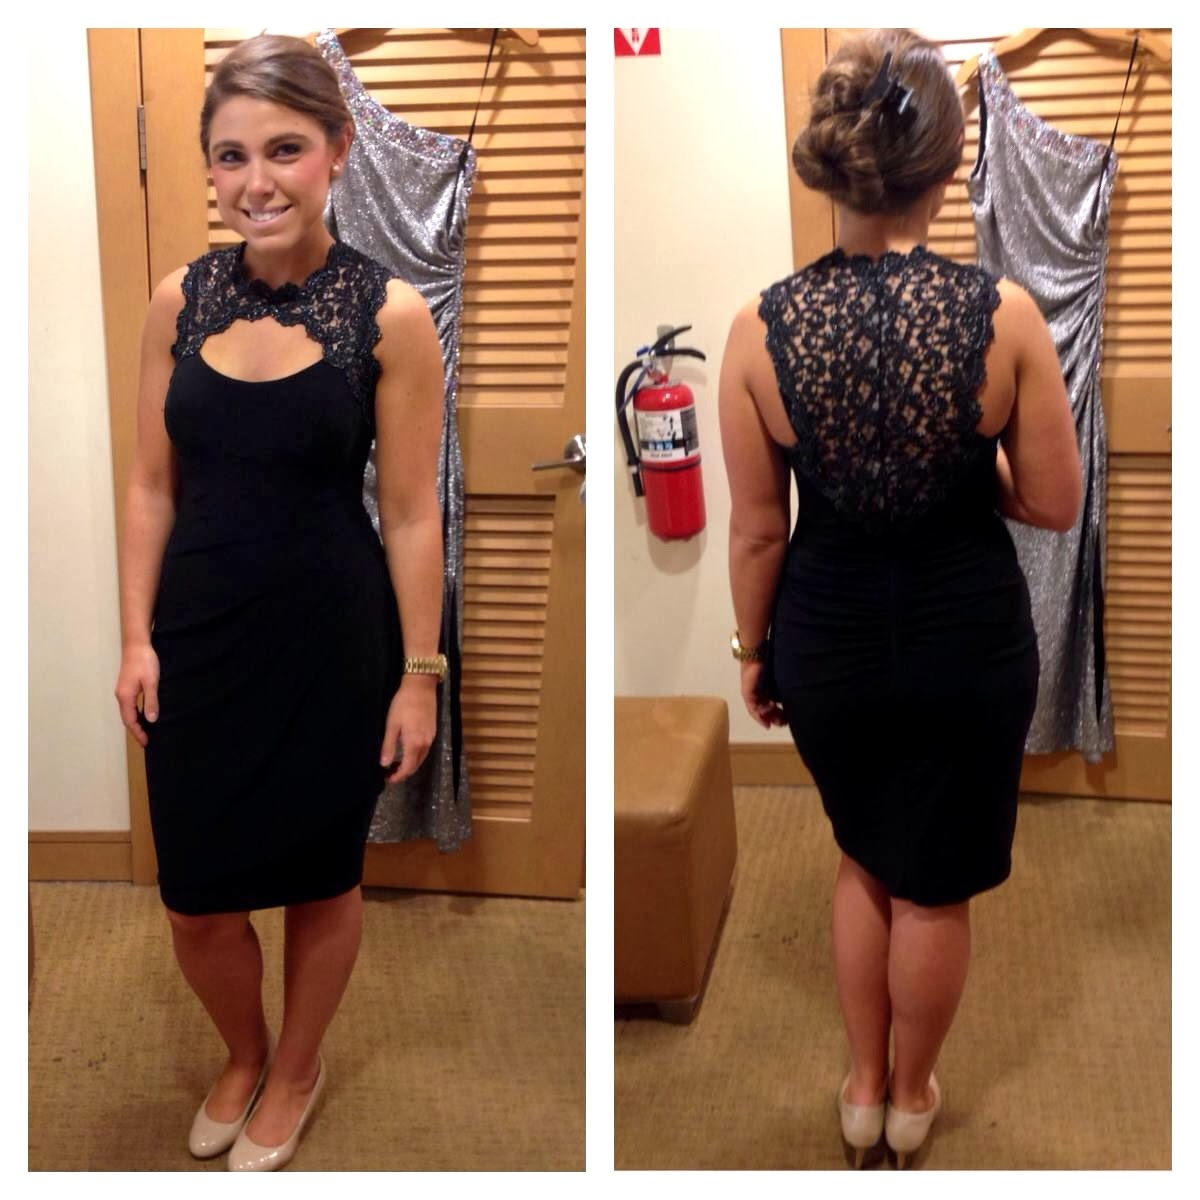 Get Jessed Up Which Lbd For The Wedding Hostess Dresses Pictures